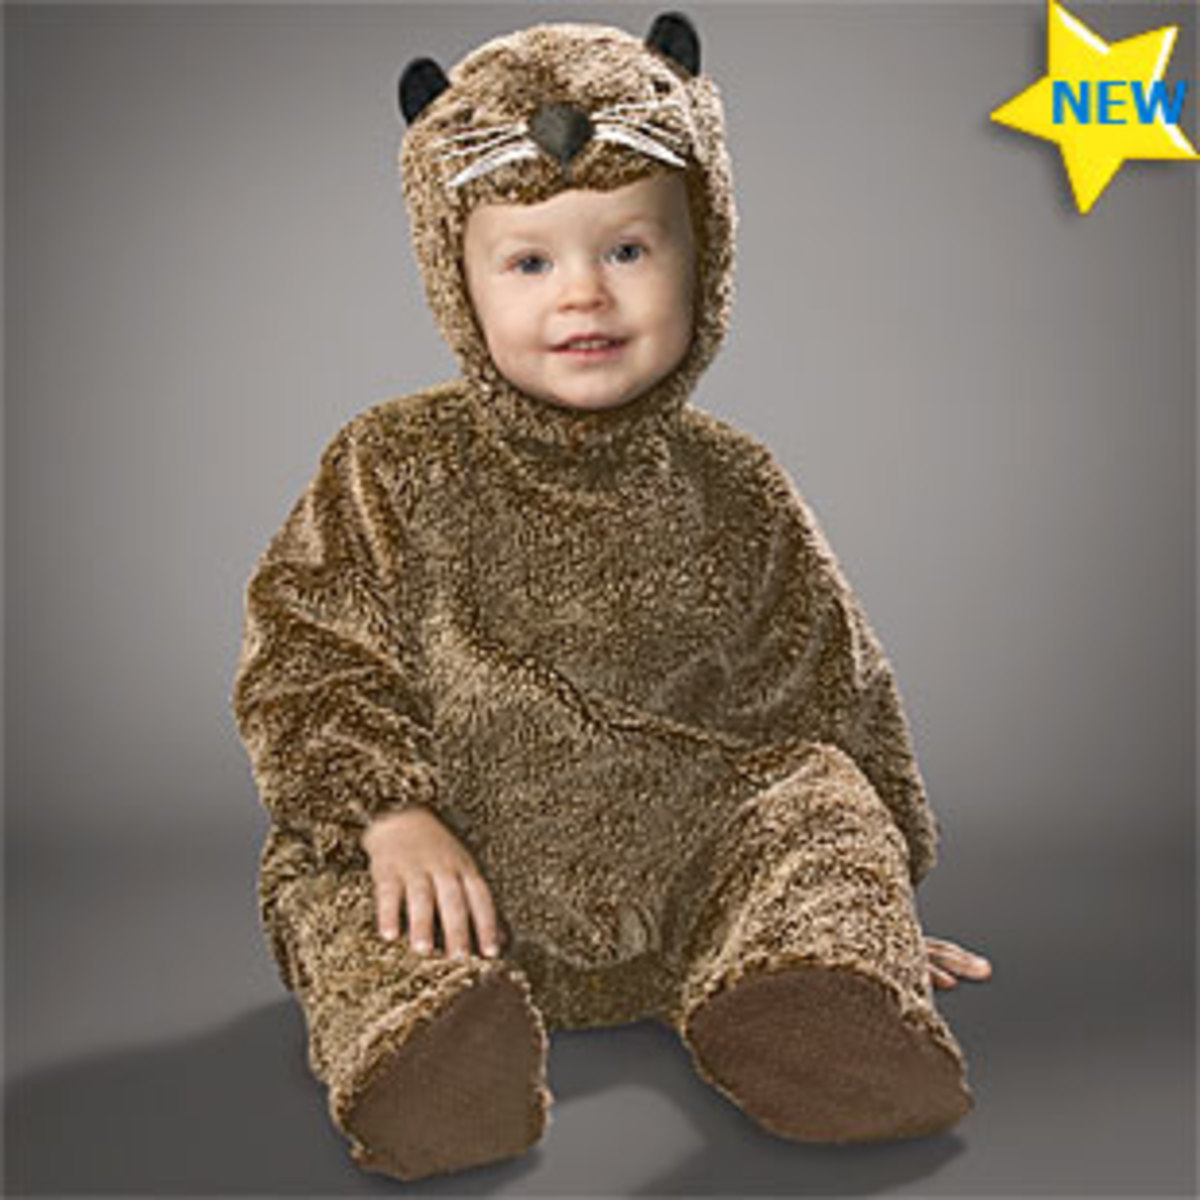 Sea Otter costume